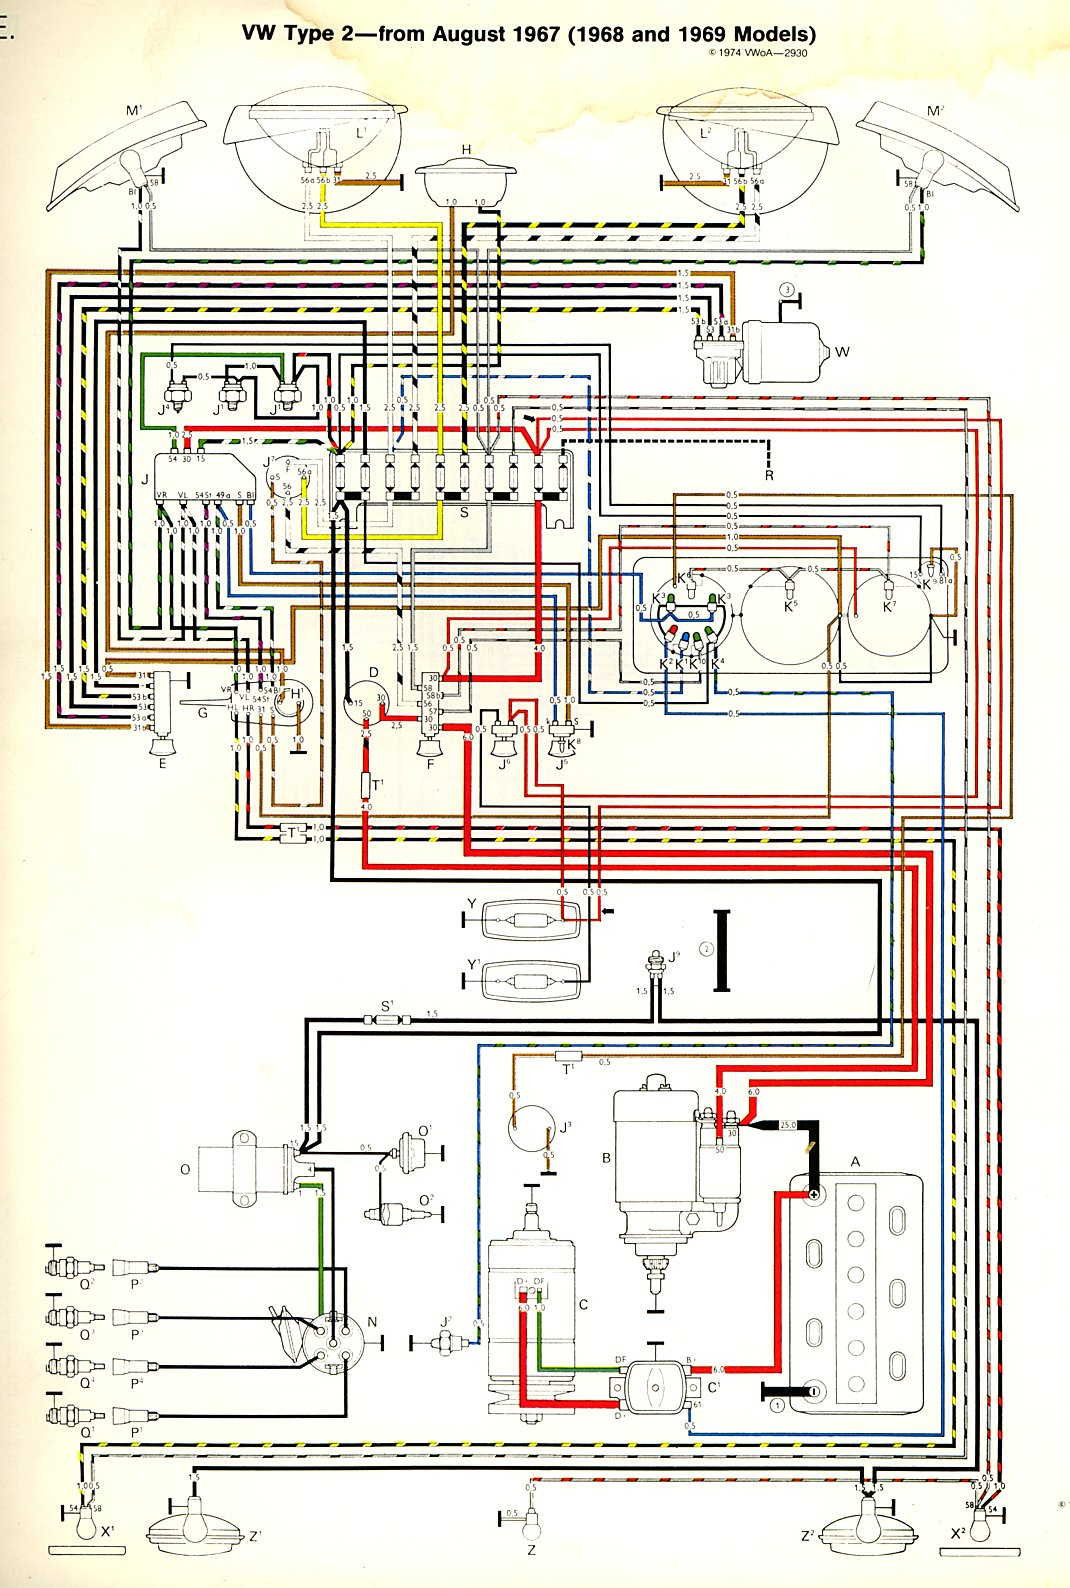 baybus_6869a 1968 69 bus wiring diagram thegoldenbug com 1968 vw bug wiring diagram at bayanpartner.co